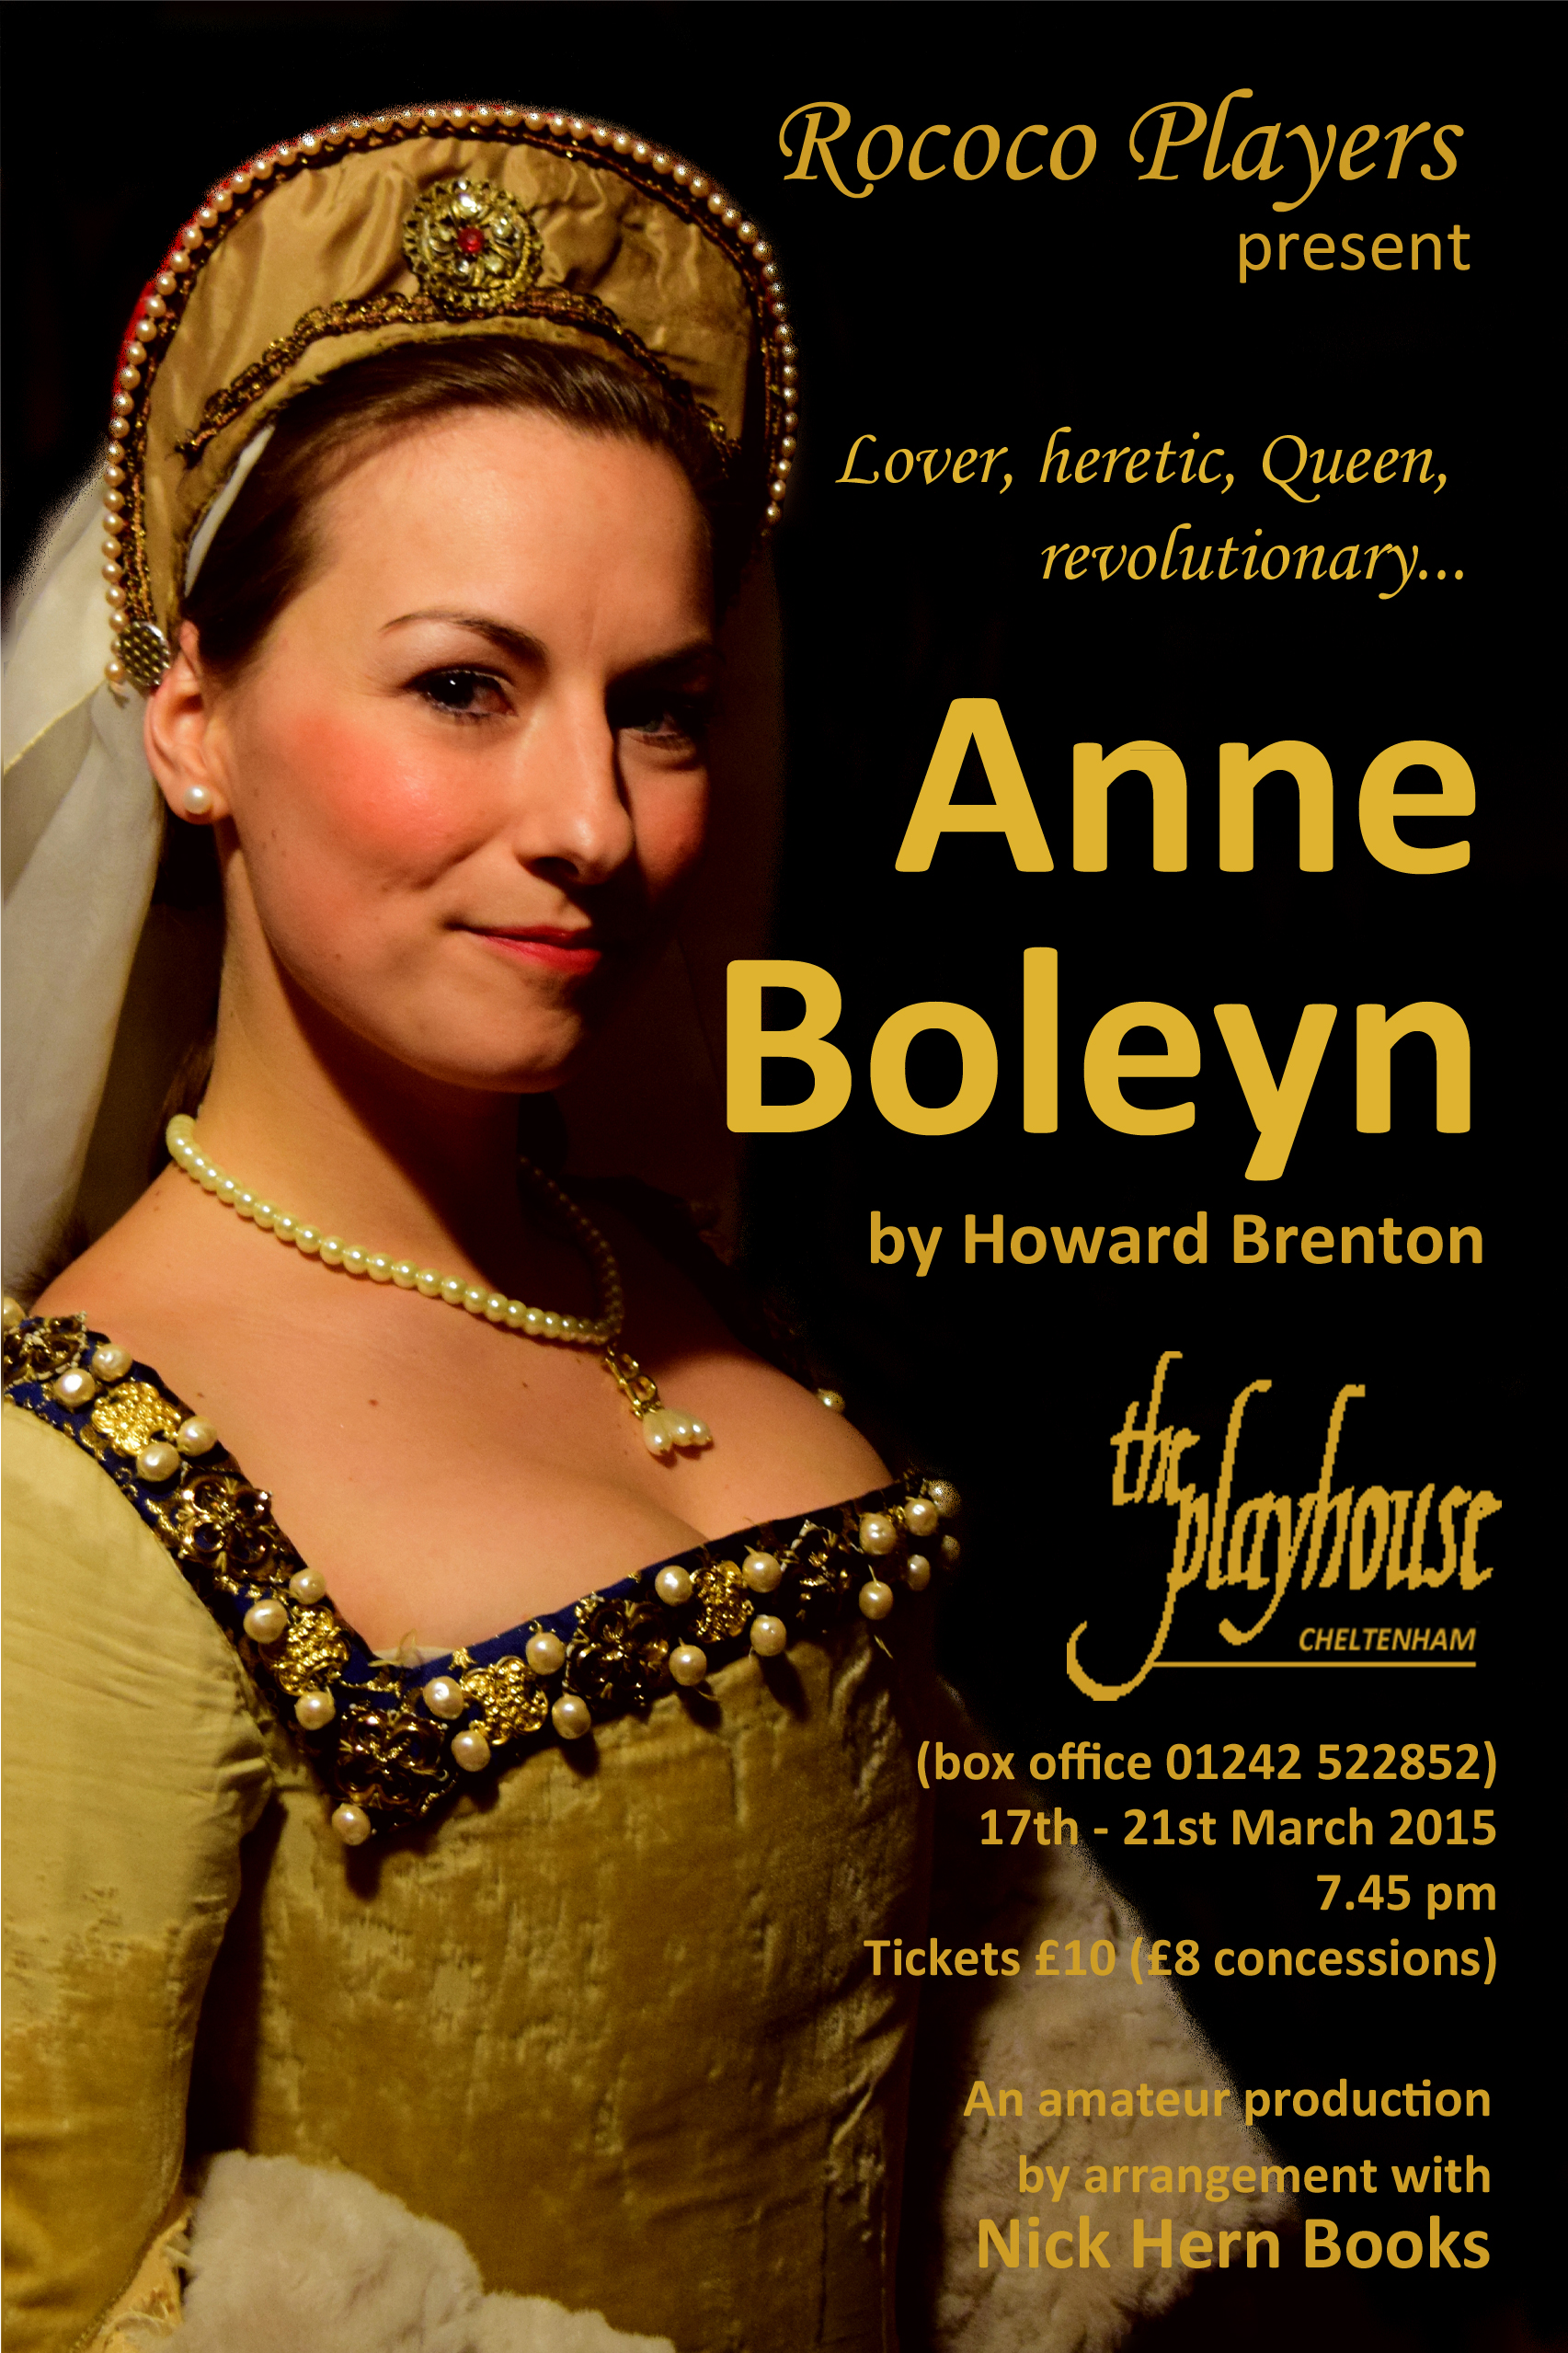 Nick Hern Books - Plays to Perform - Advertise Your Show images - AnneBoleynRococo